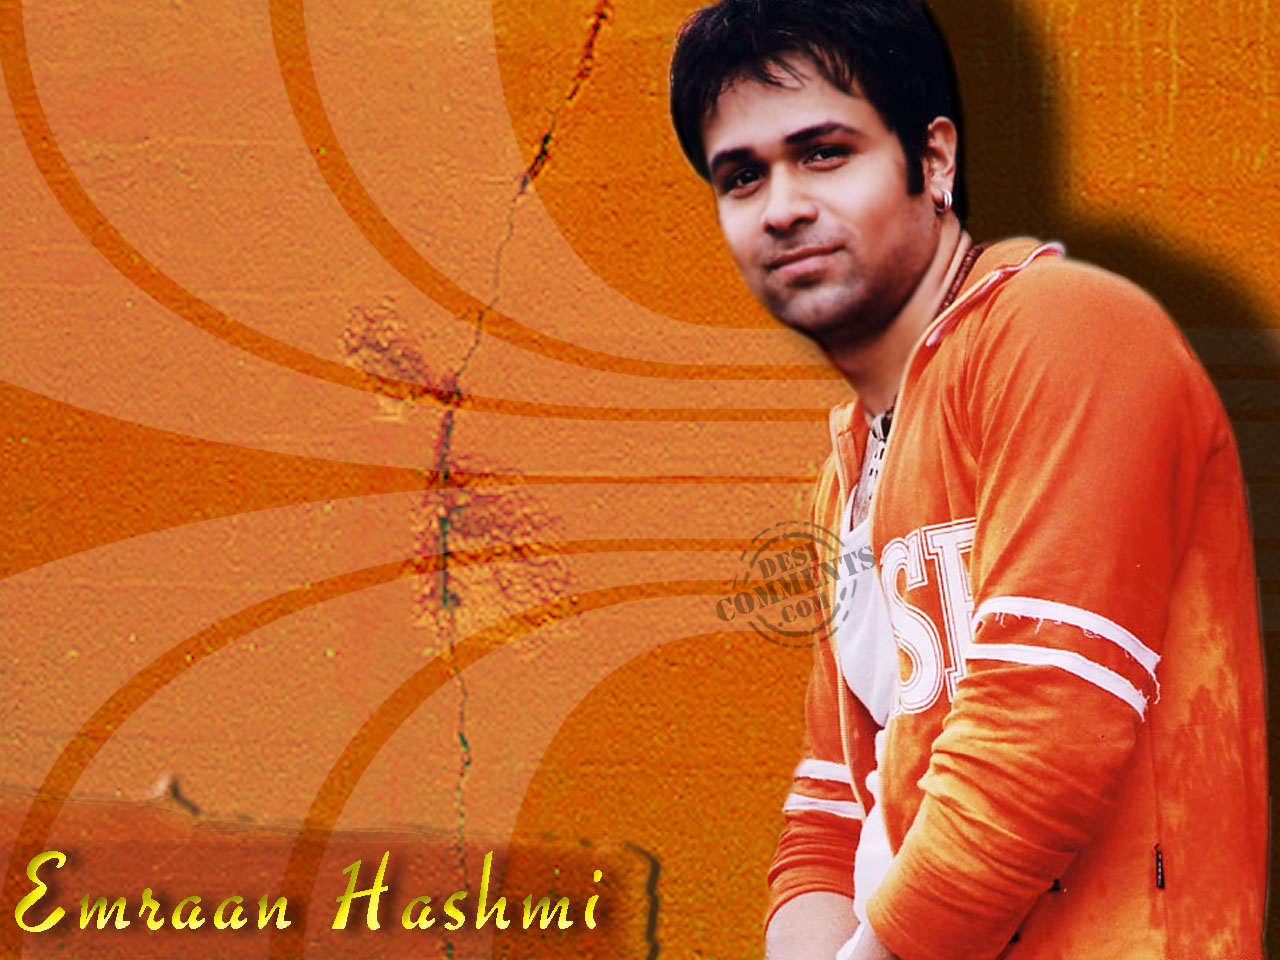 http://www.desicomments.com/wallpapers/bollywood/emraan_hashmi/Emraan-Hashmi-Wallpapers-10.jpg